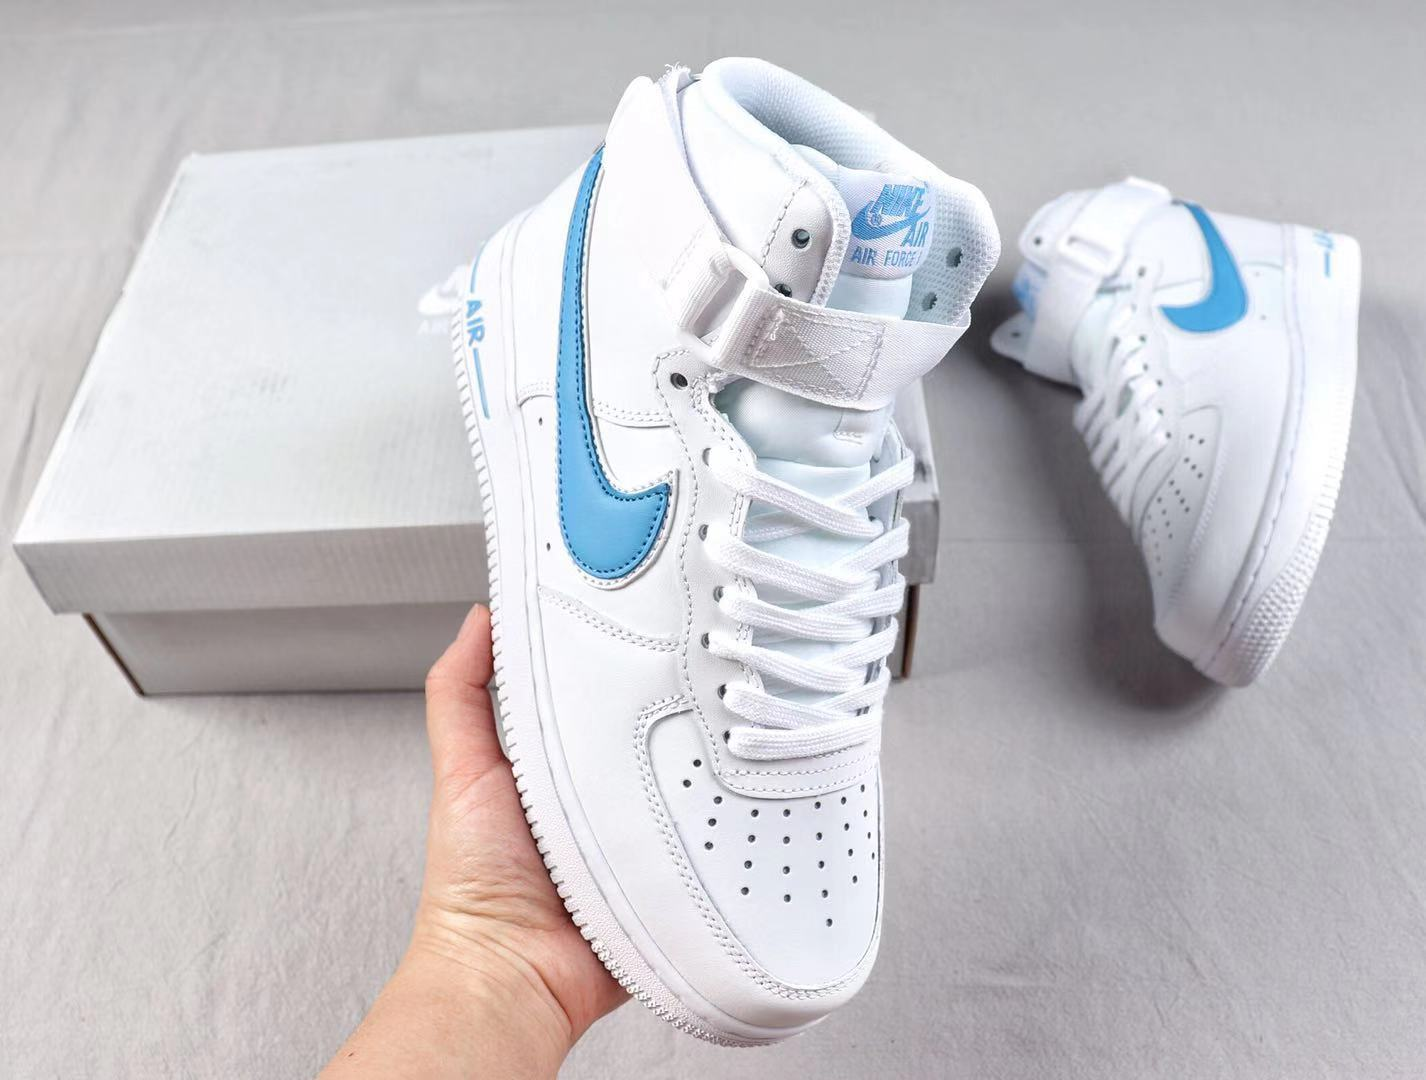 2019 Buy Nike Air Force 1'07 High White/Photo Blue Fashion Shoes AT4141-102